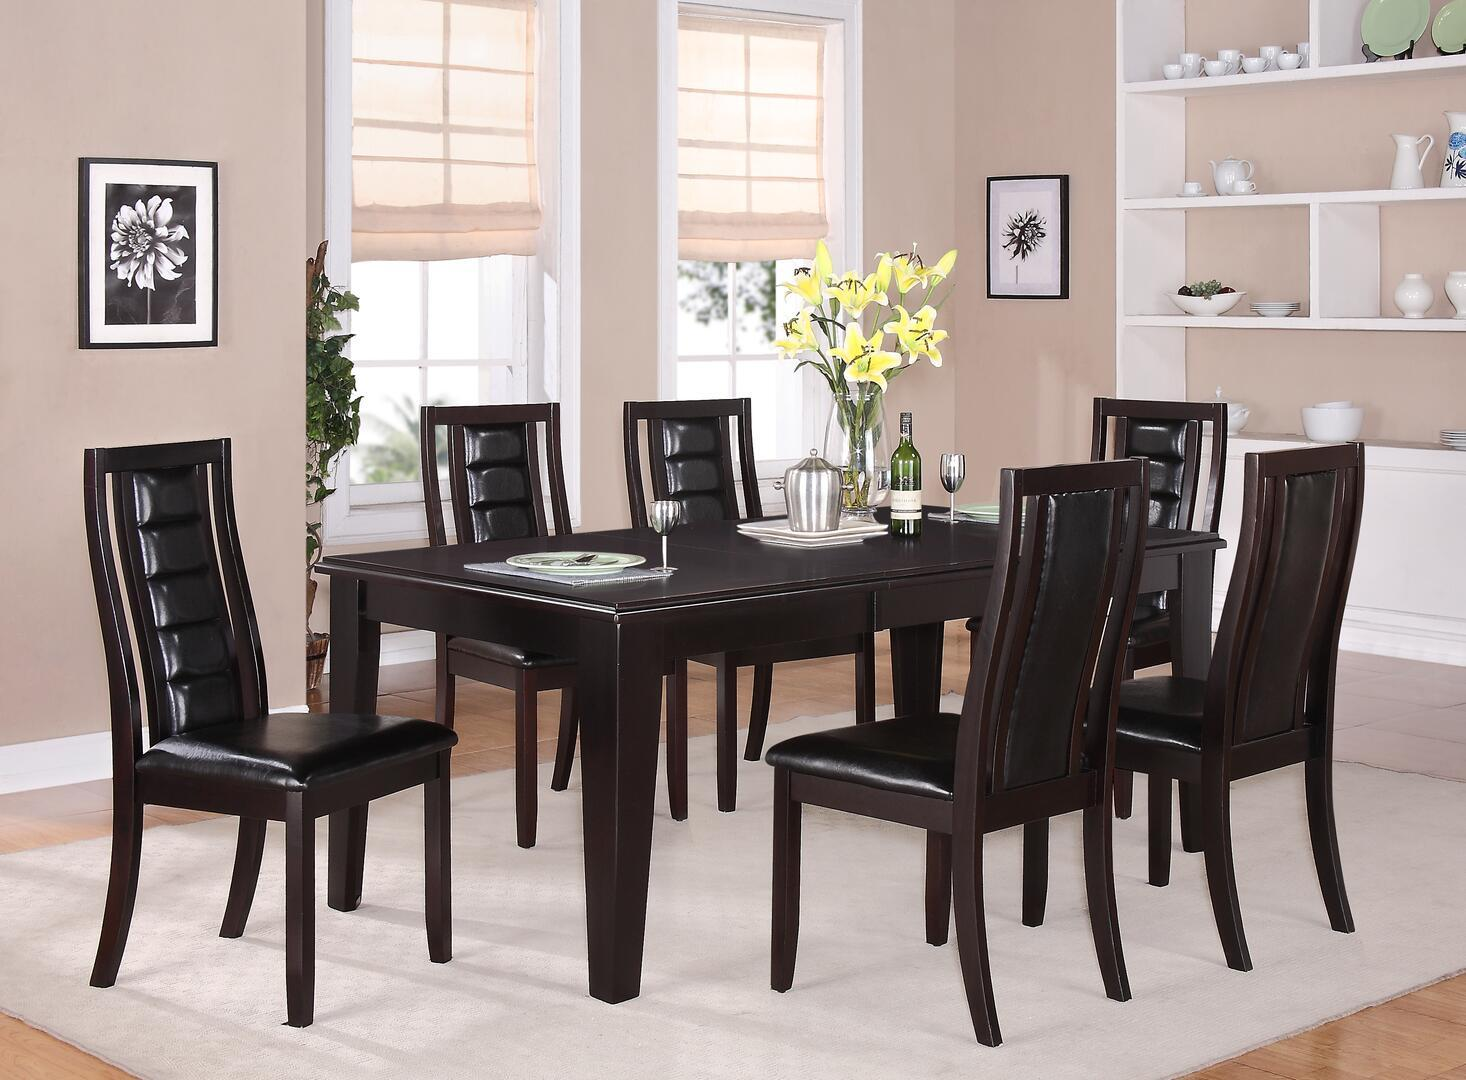 Transitional Espresso Faux Leather Dining Room Set 7 pcs Cosmos Furniture Era-Set-7